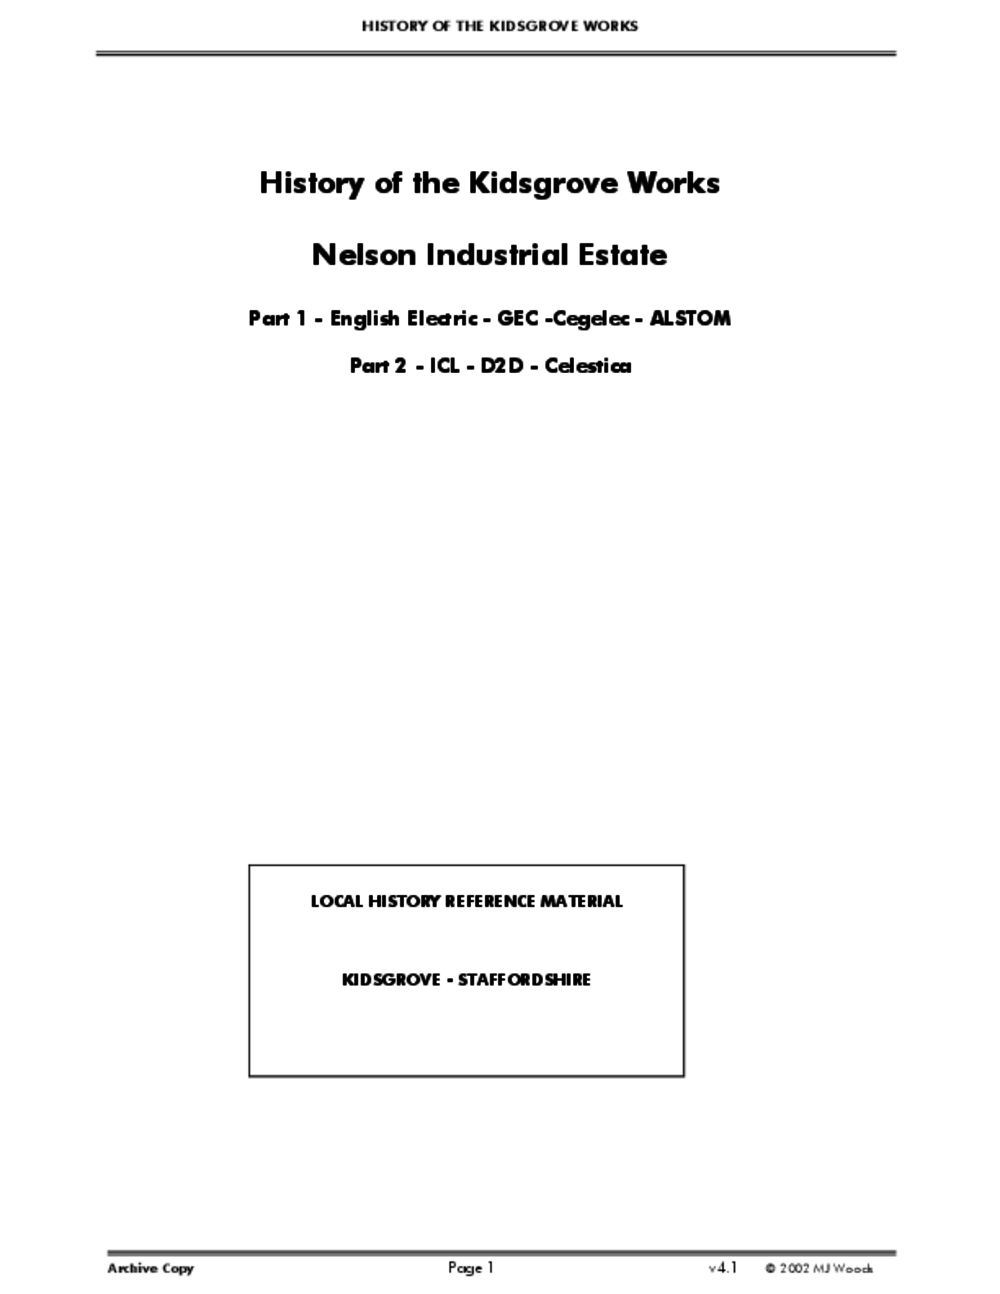 Article: History of the Kidsgrove Works